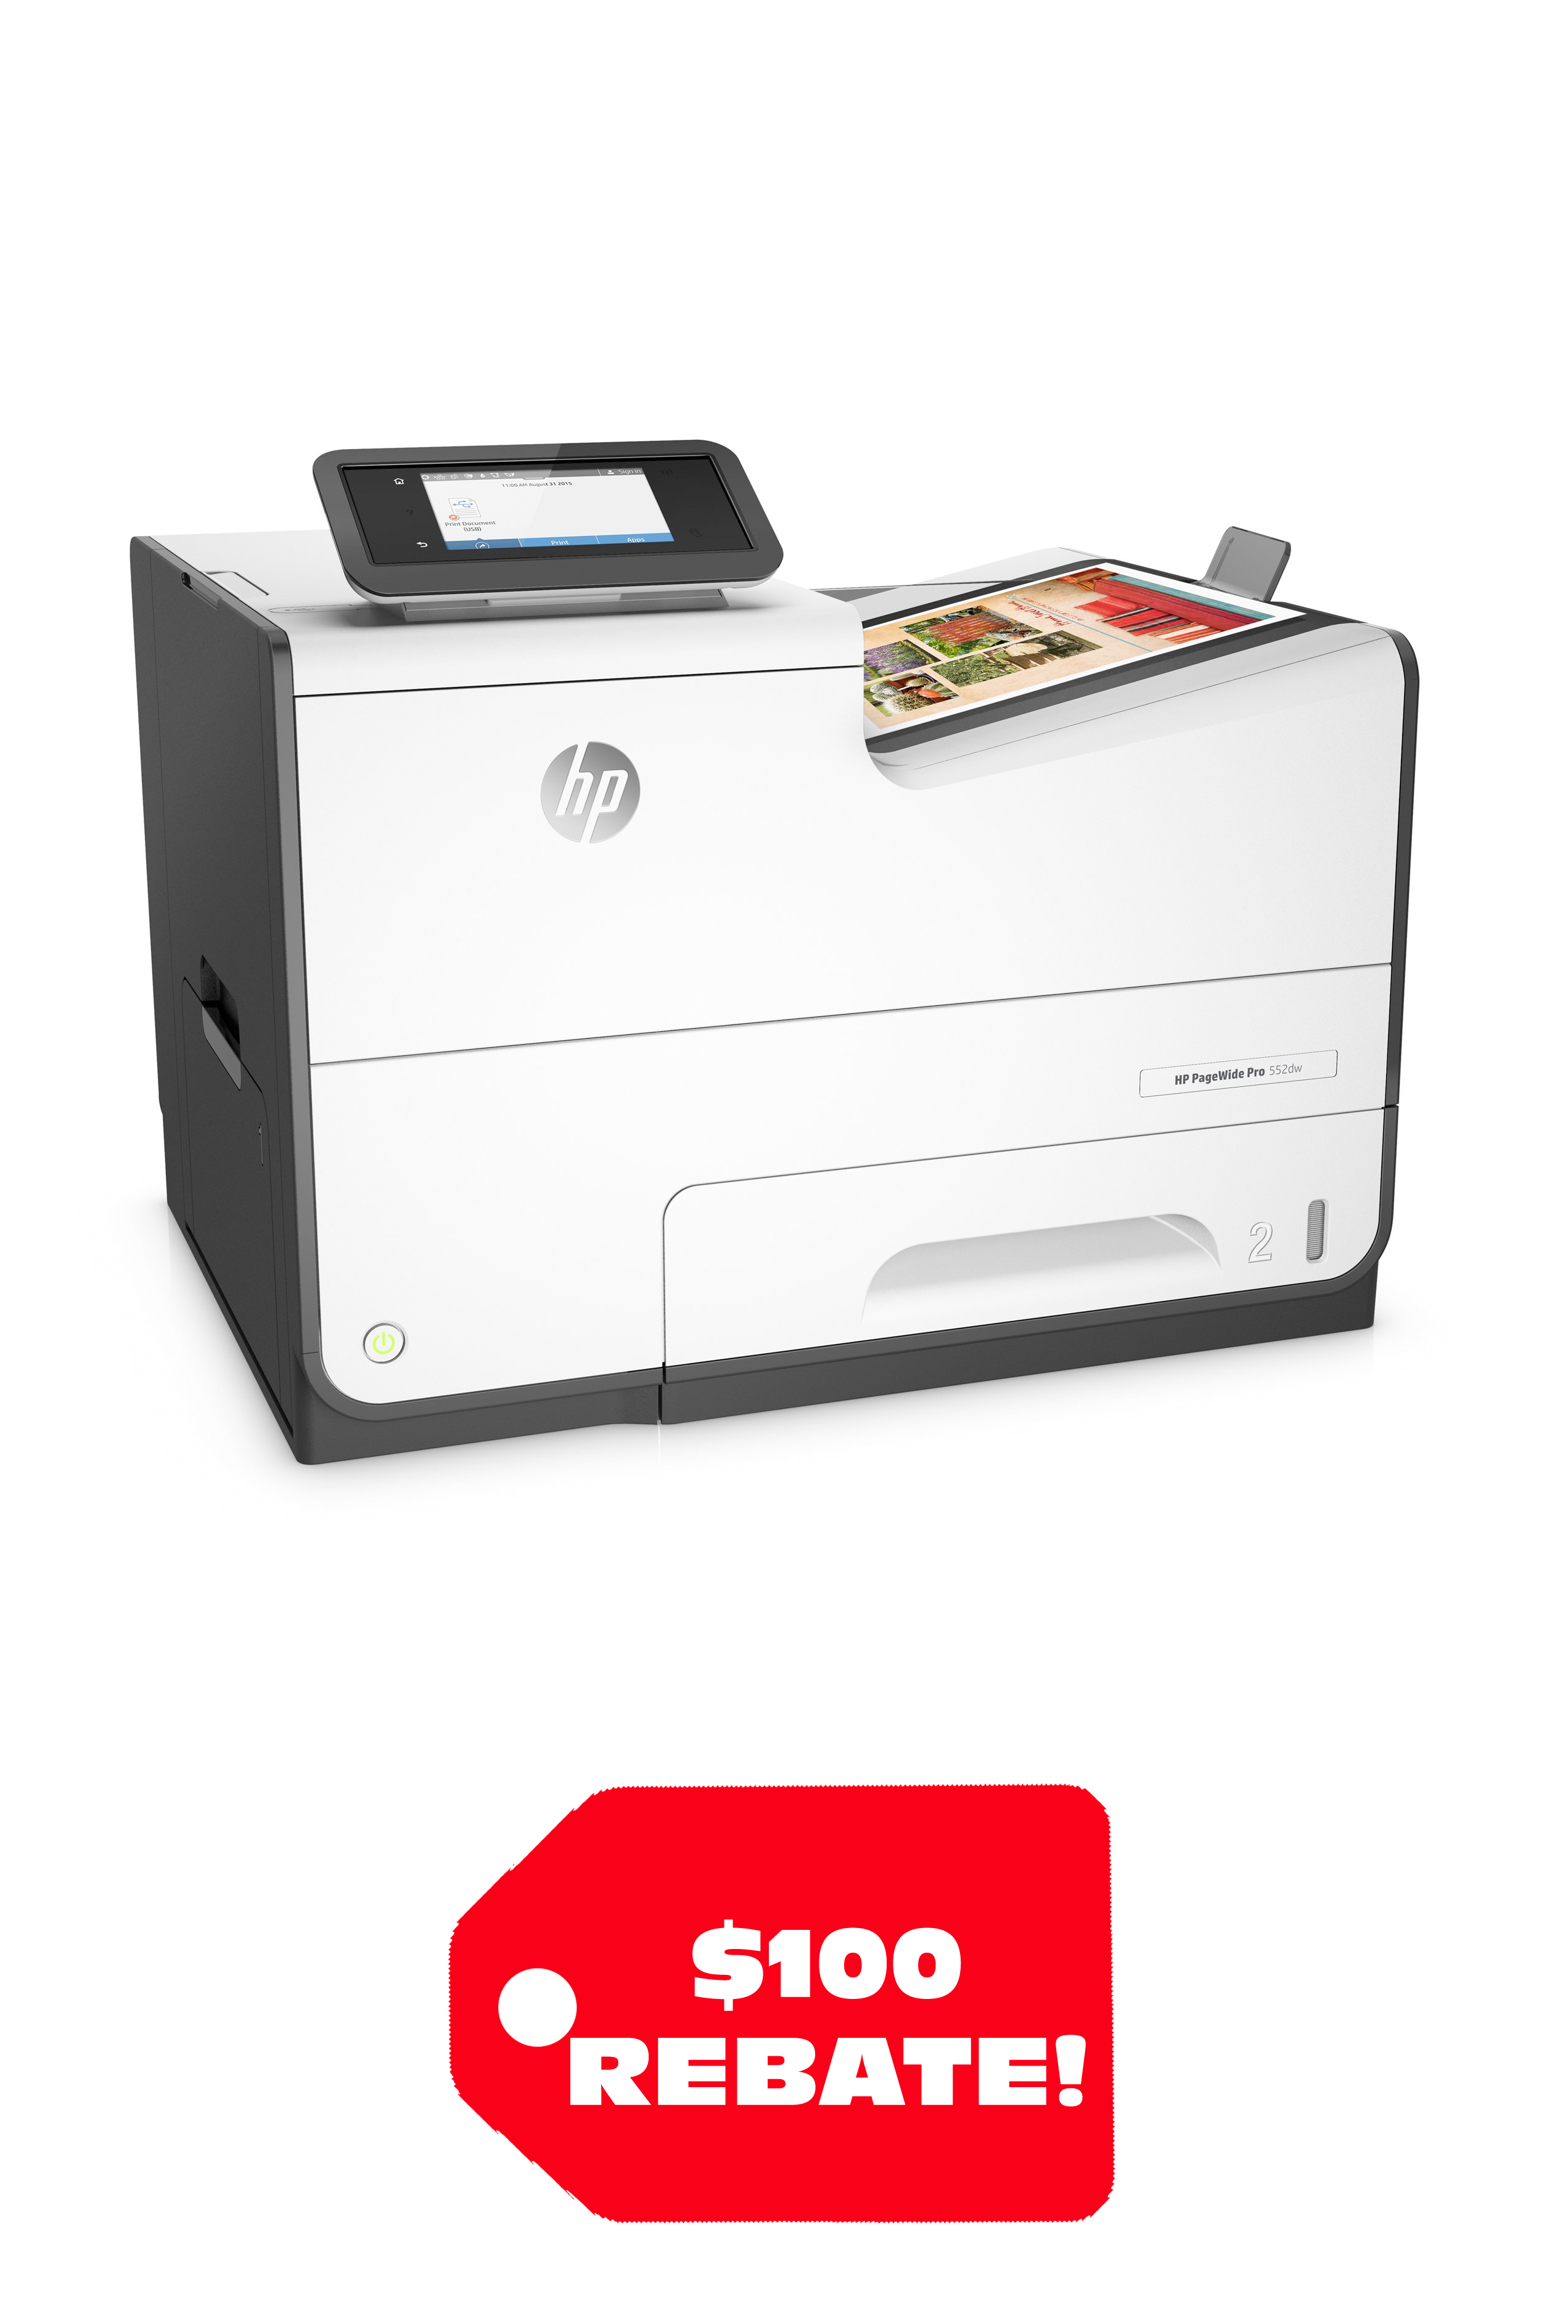 HP Black and White PageWide Pro 552dw 50ppm/ 50ppm Printer